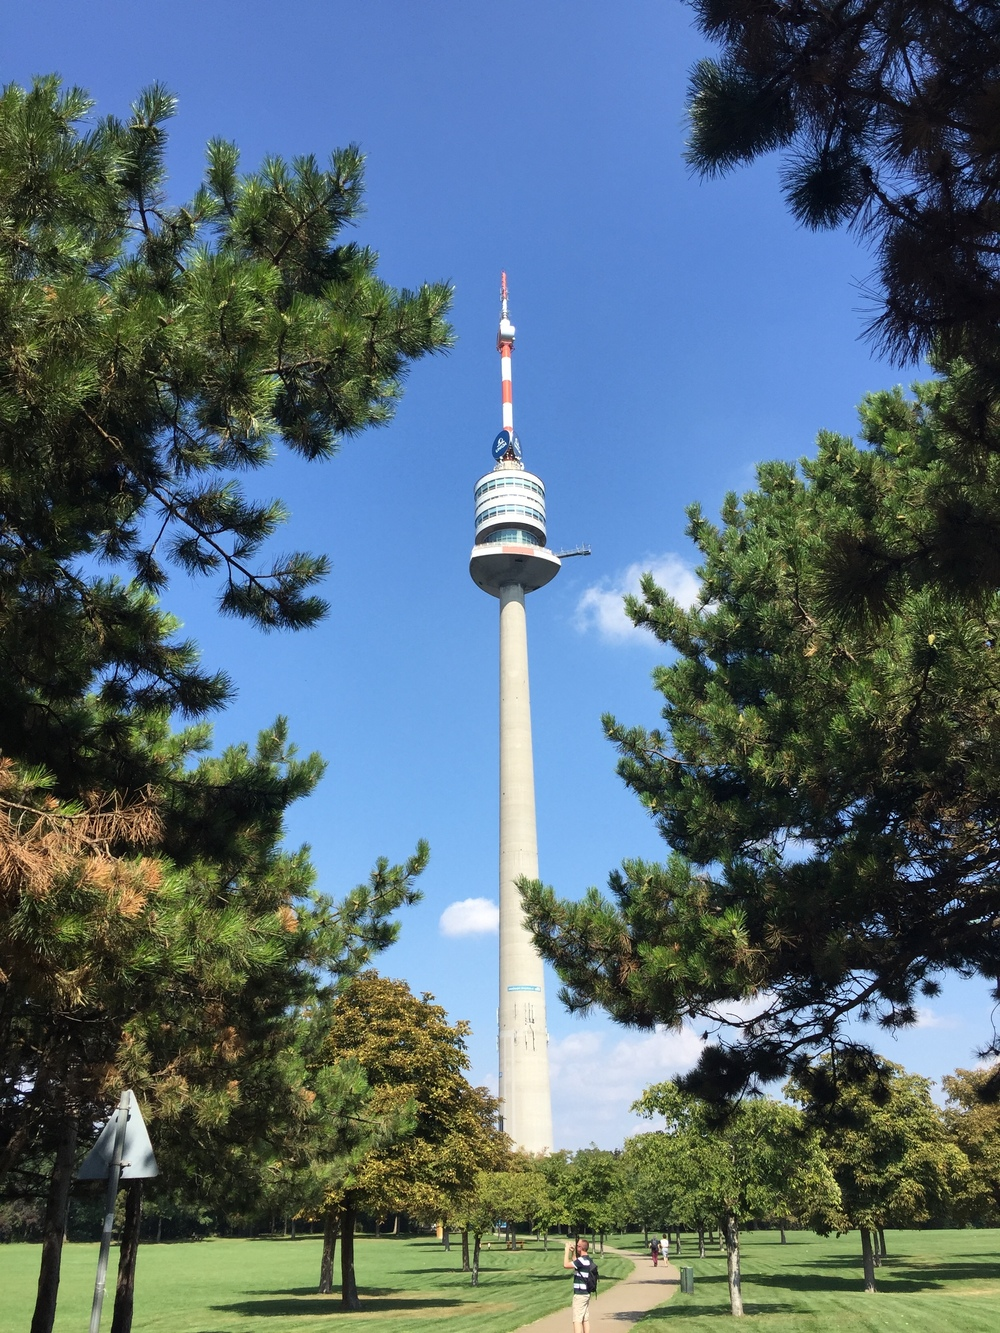 A clearer view of the Danube Tower from Donauturm Park.